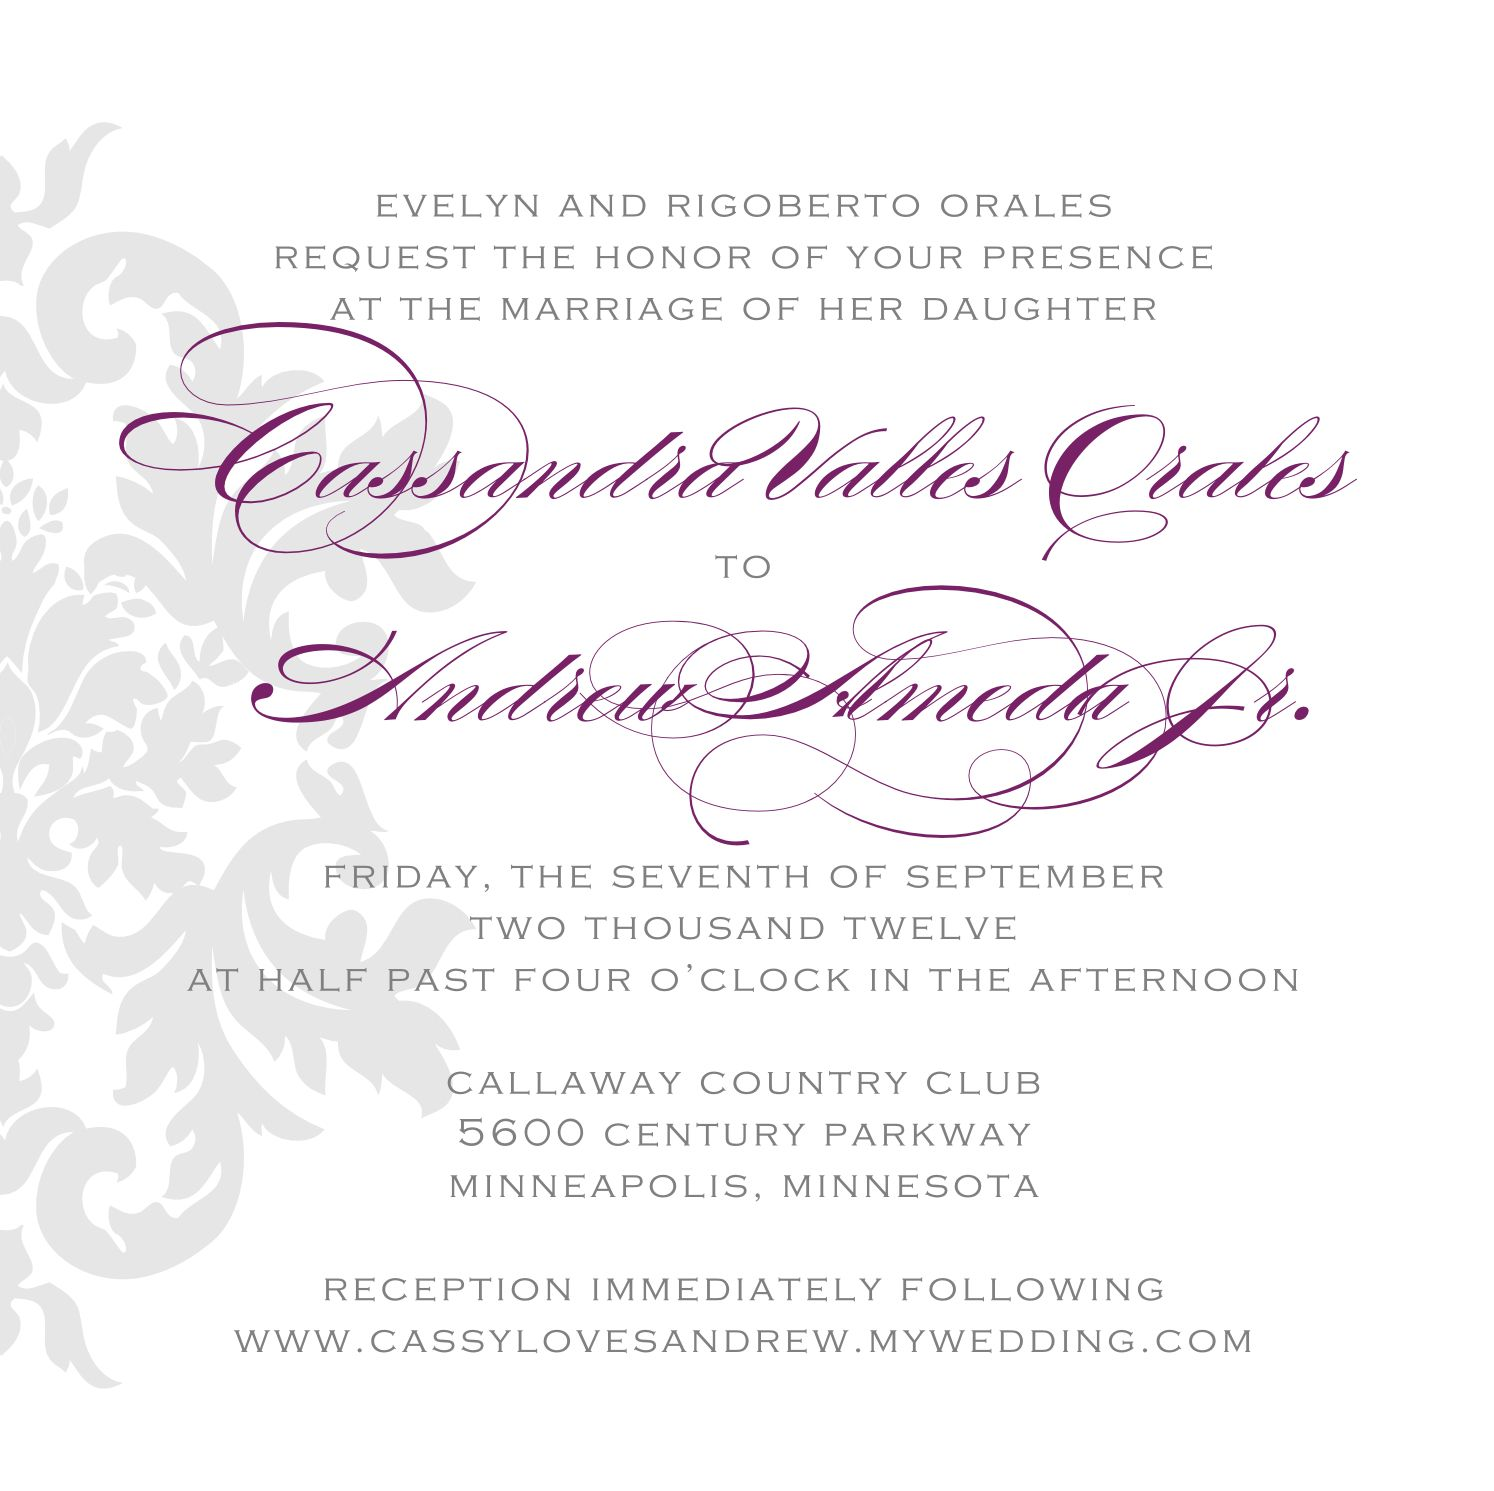 Wedding Invitations in Spanish Modern Templates There